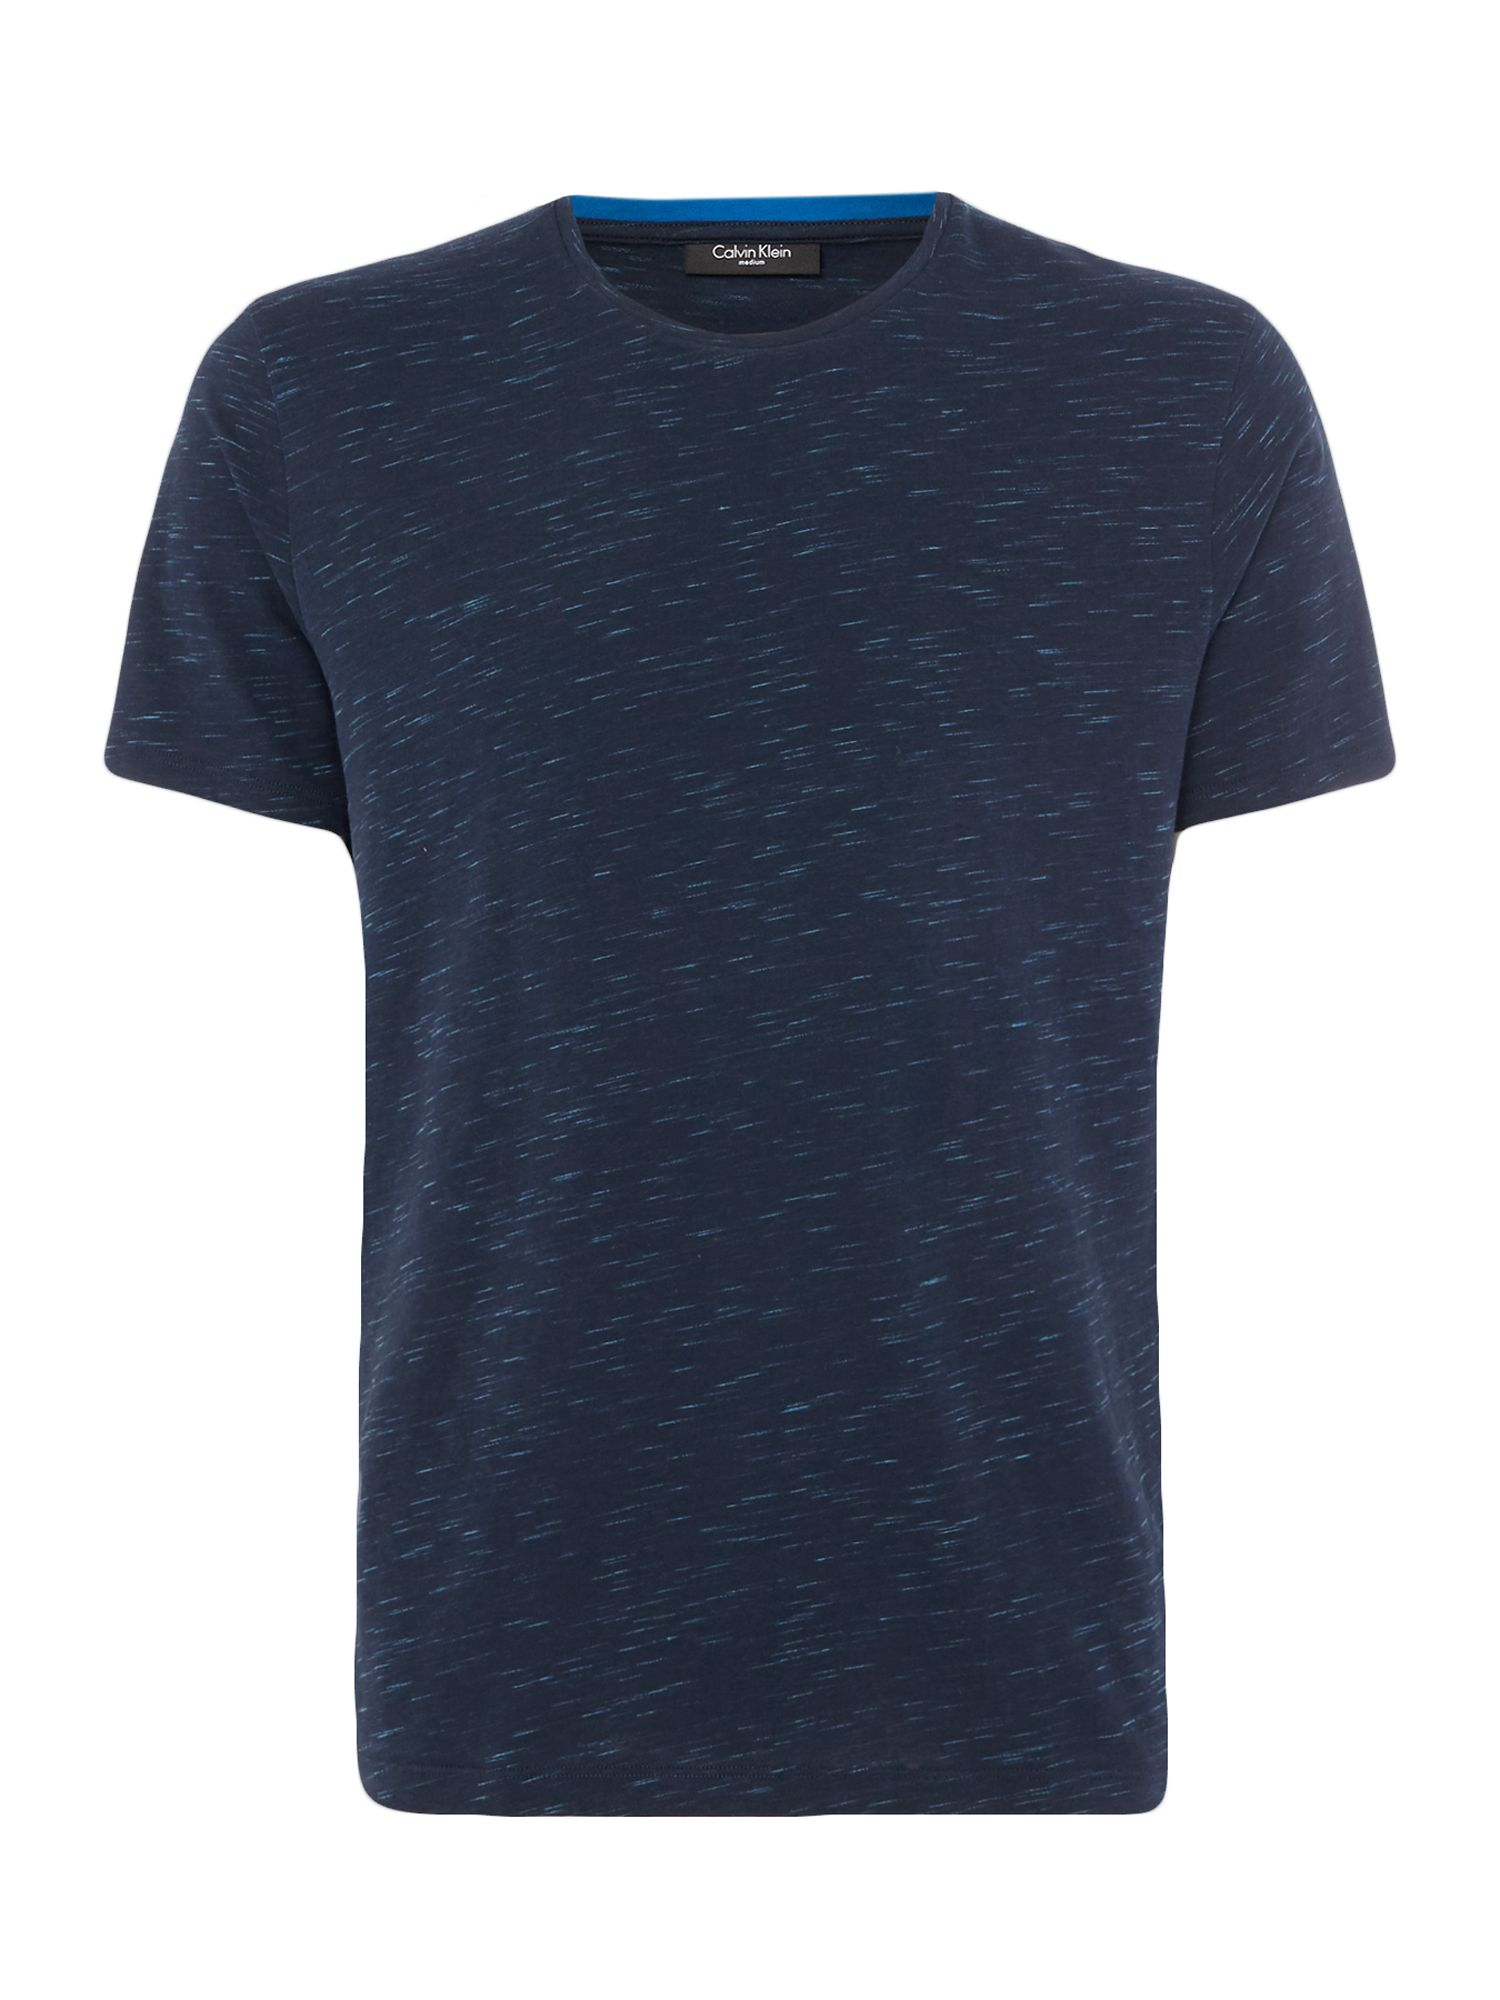 Men's Calvin Klein Jaspa T-shirt, Blue